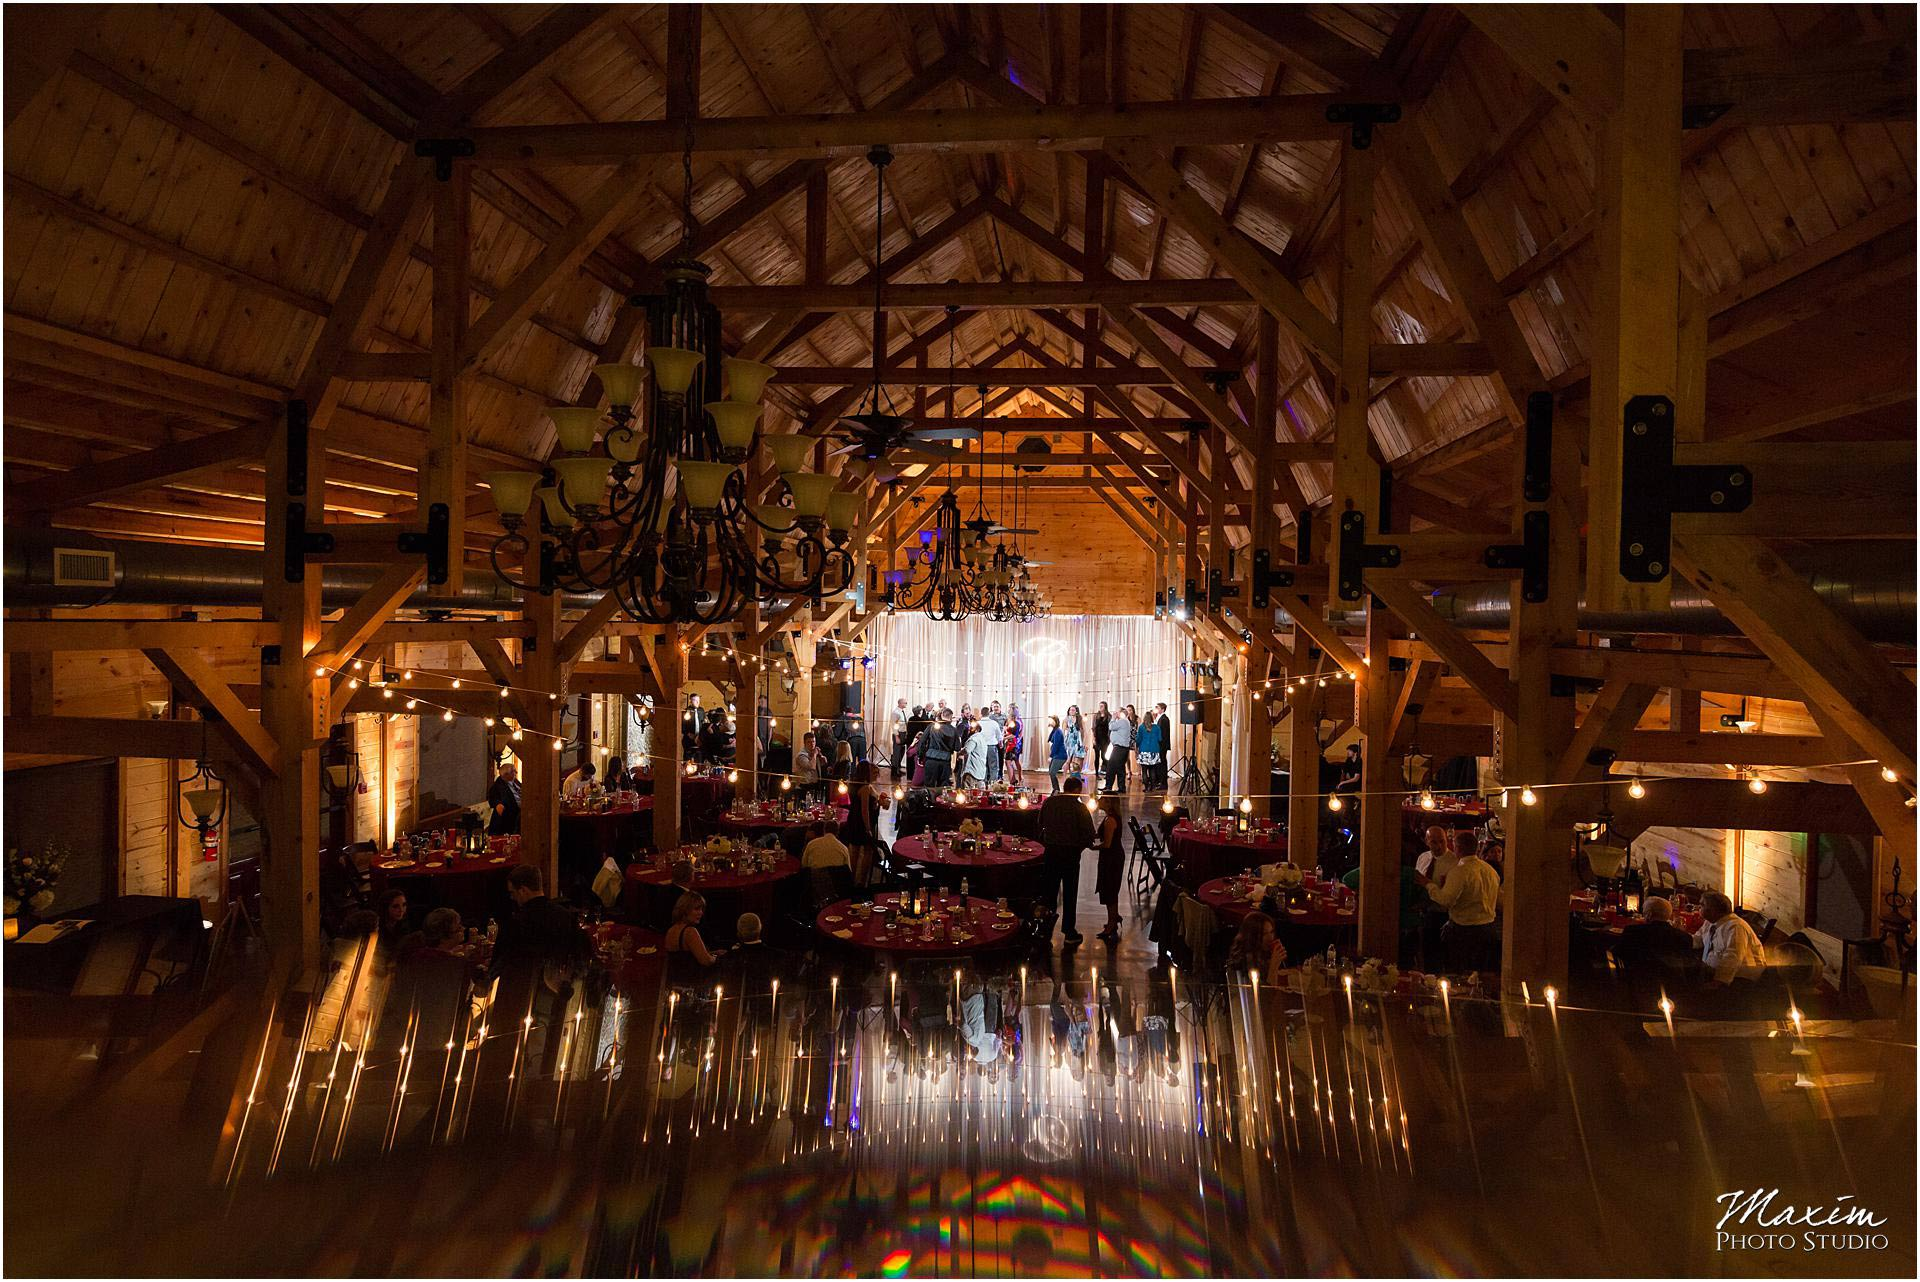 Canopy Creek Dayton Ohio Wedding Reception reflection